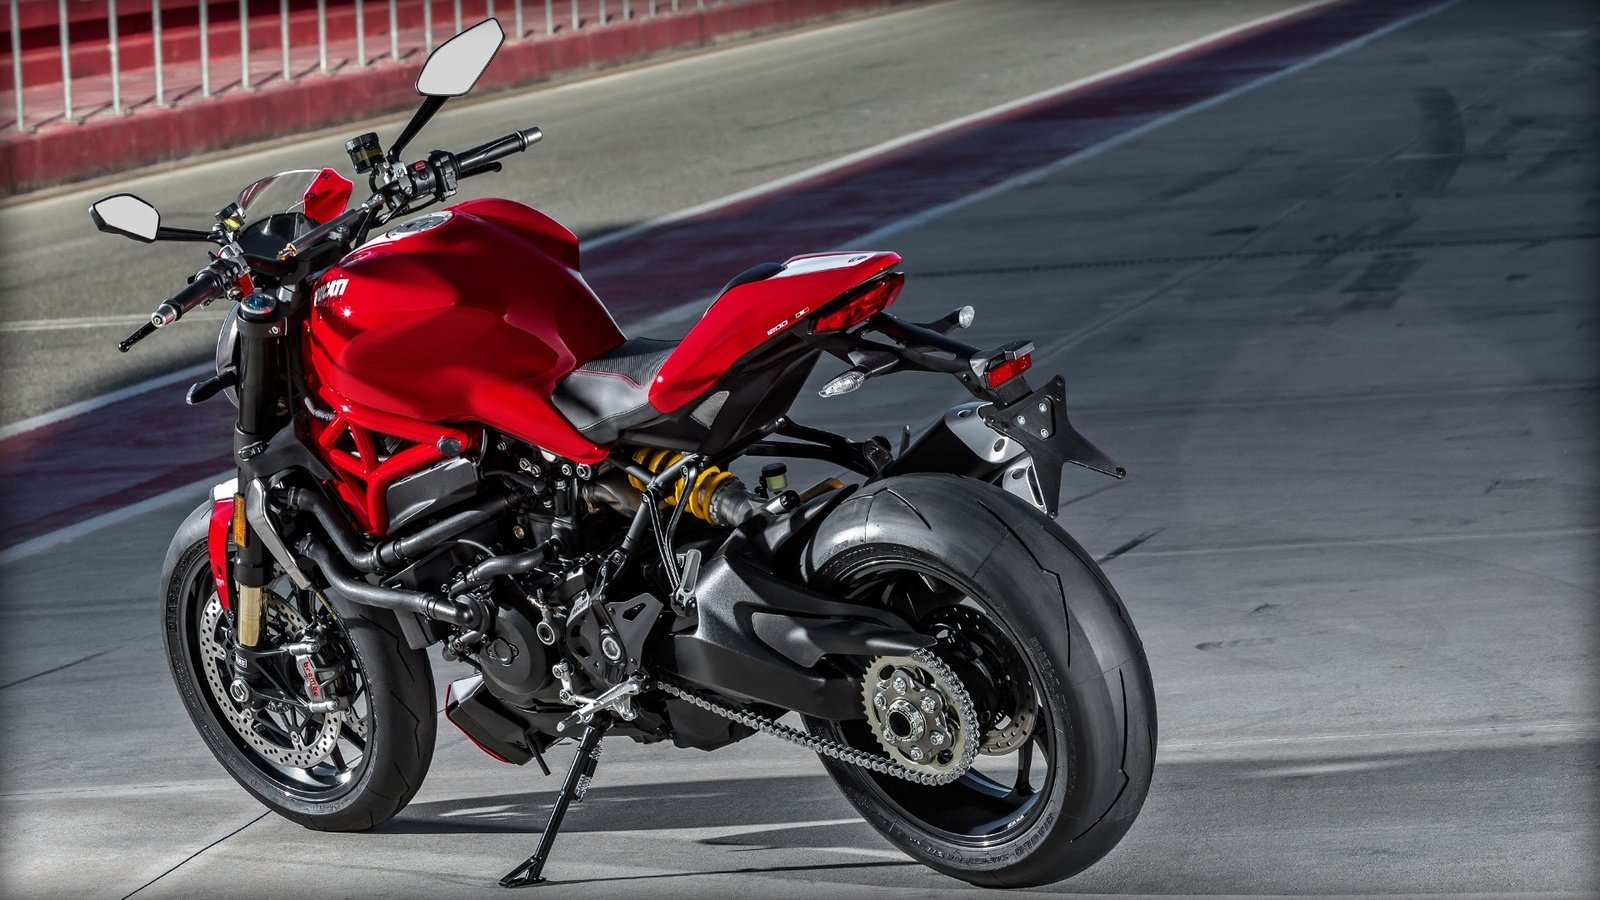 2015 2017 ducati monster 1200 1200 s 1200 r picture 650081 motorcycle review top speed. Black Bedroom Furniture Sets. Home Design Ideas